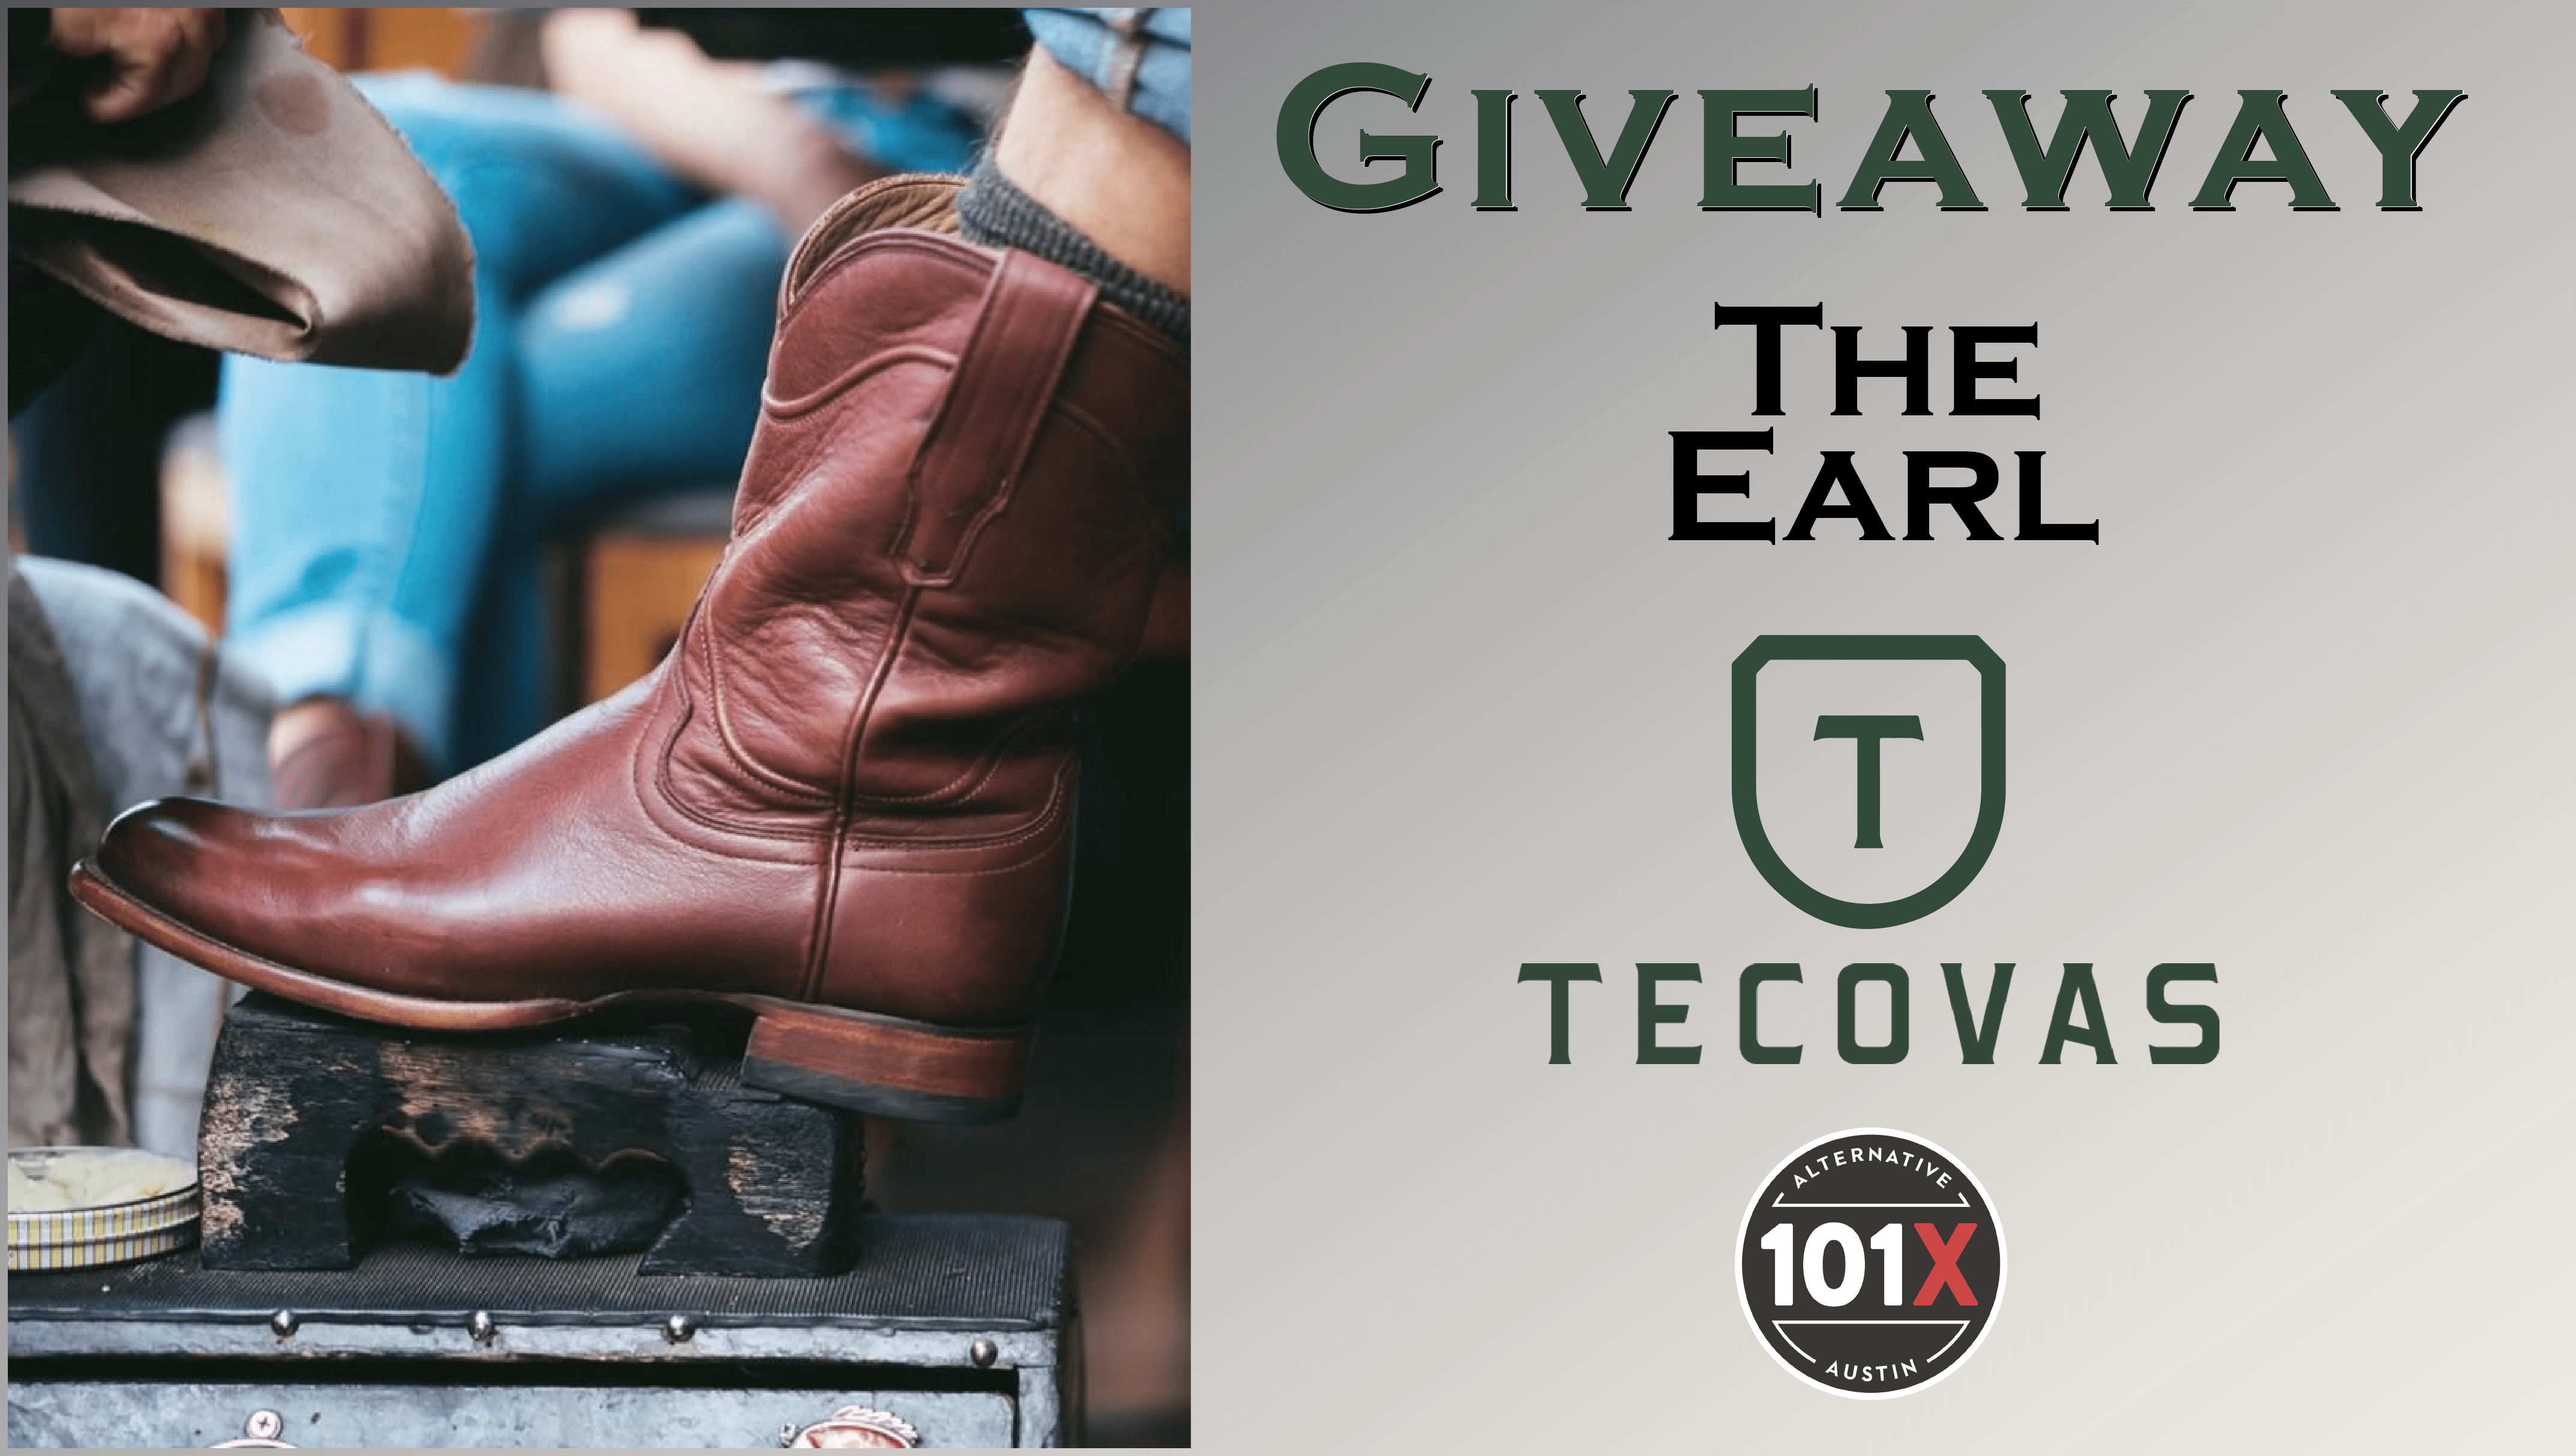 Giveaway The Earl boots Tecovas 101x Contest